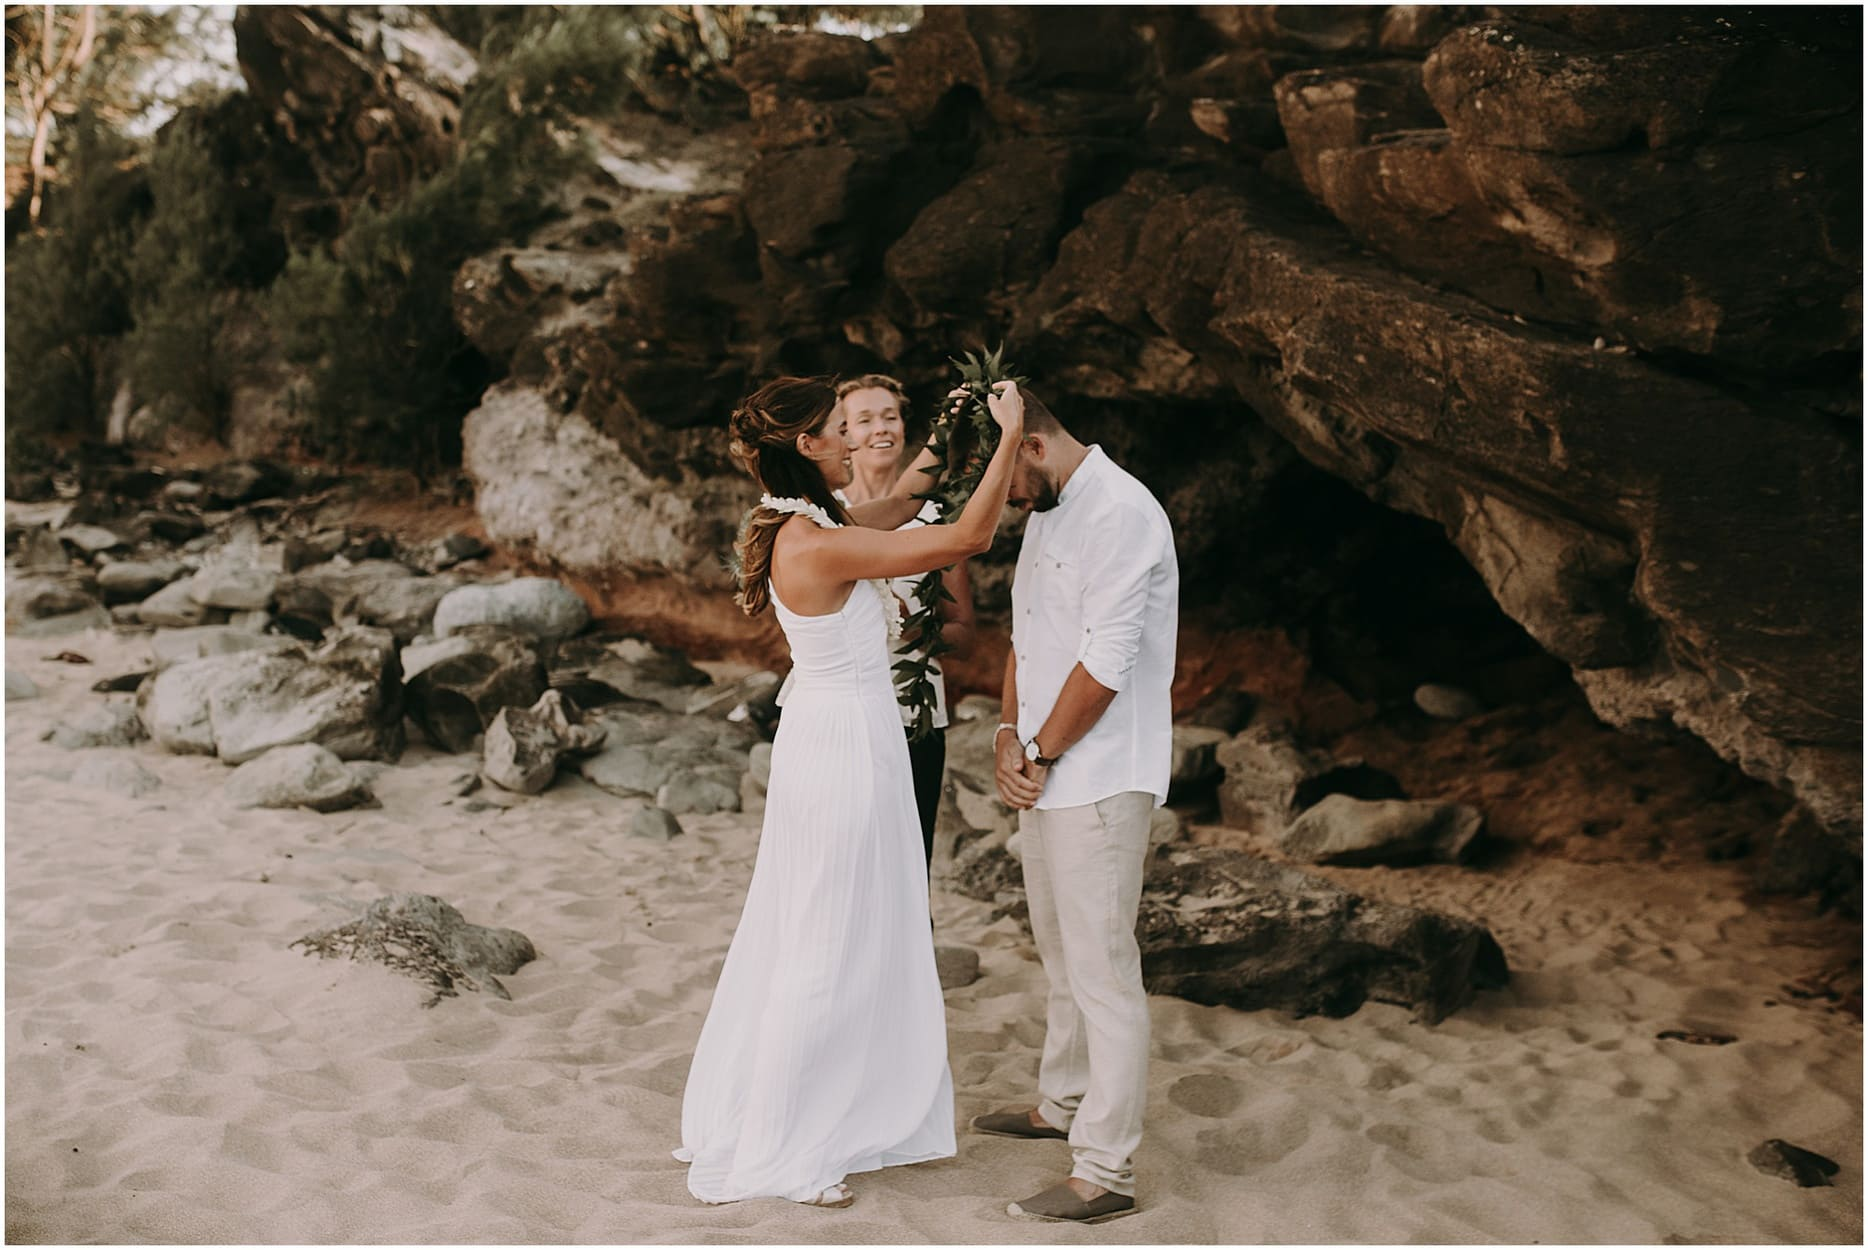 Maui wedding photographer13